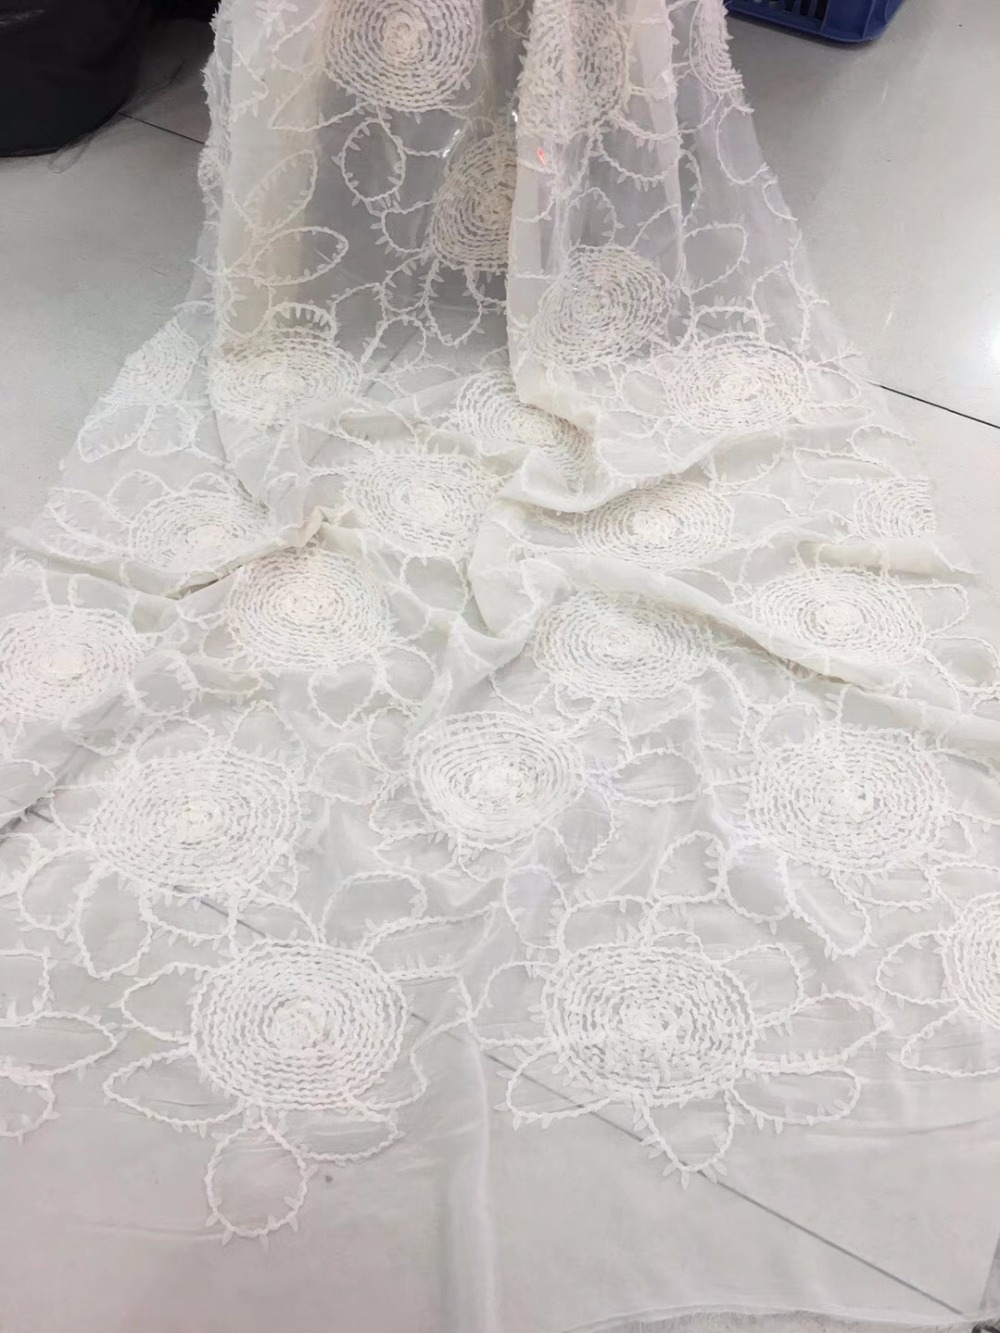 African Lace Fabric 2018 Embroidered Nigerian Laces Fabric Bridal High Quality French Tulle Lace Fabric For WomenAfrican Lace Fabric 2018 Embroidered Nigerian Laces Fabric Bridal High Quality French Tulle Lace Fabric For Women